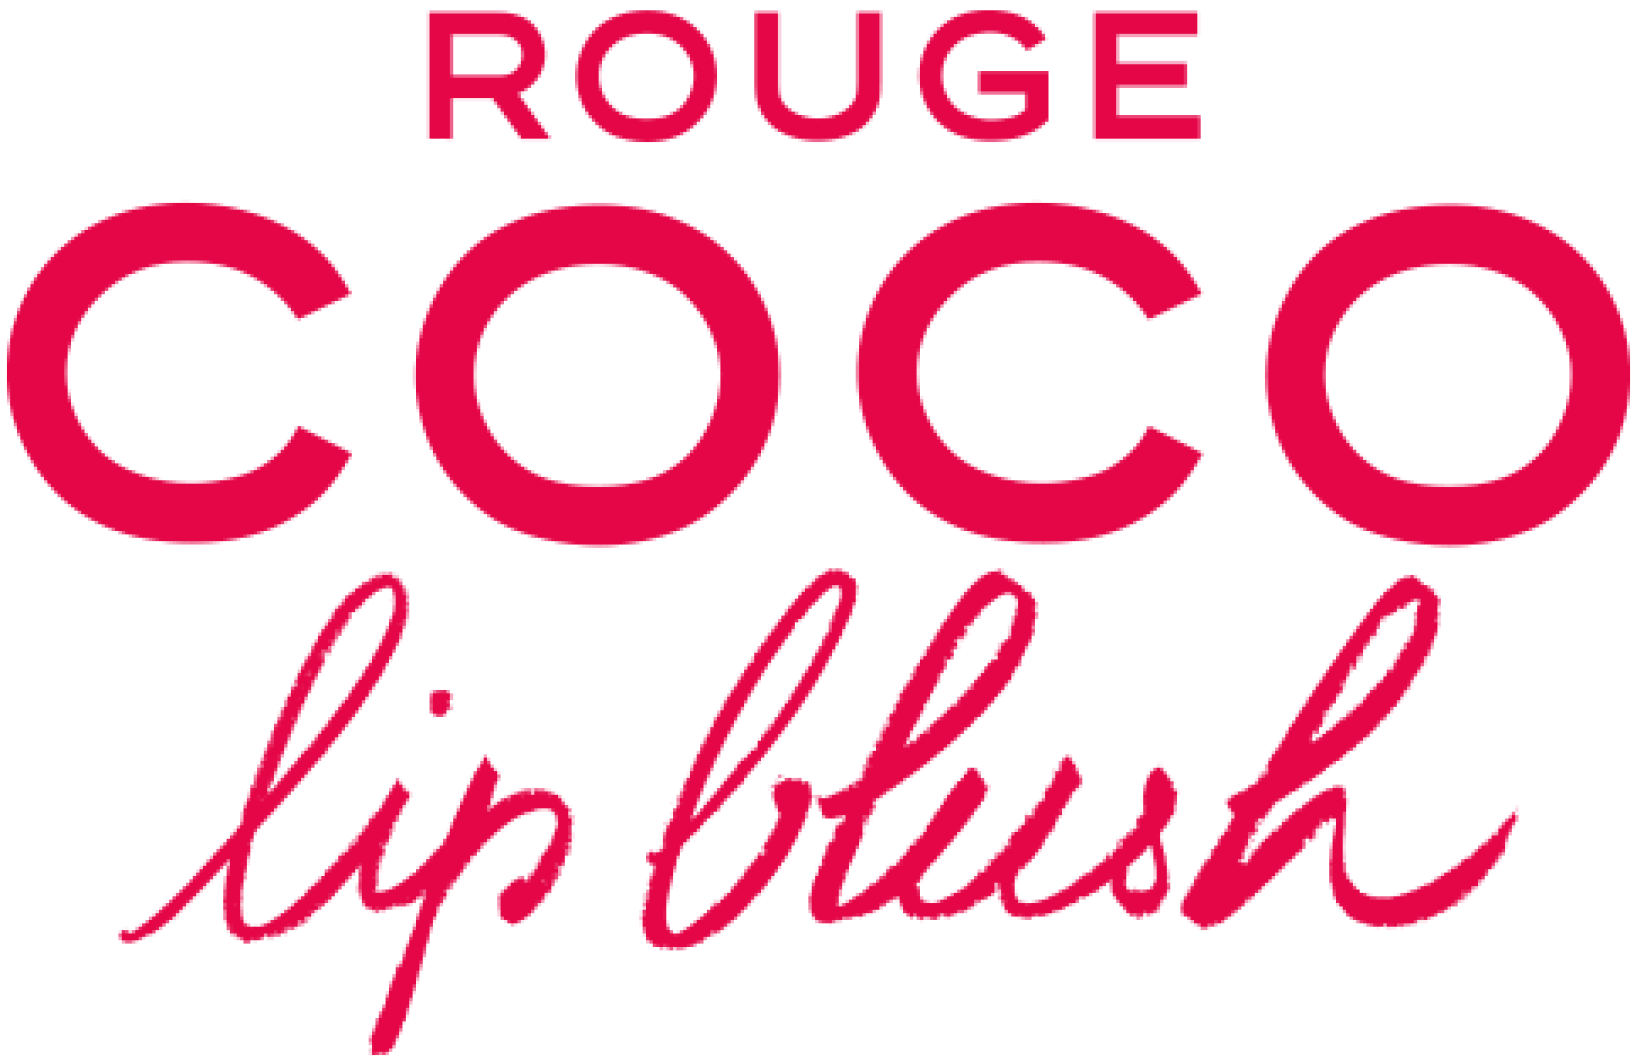 Coco chanel logo png. Rouge lip blush official